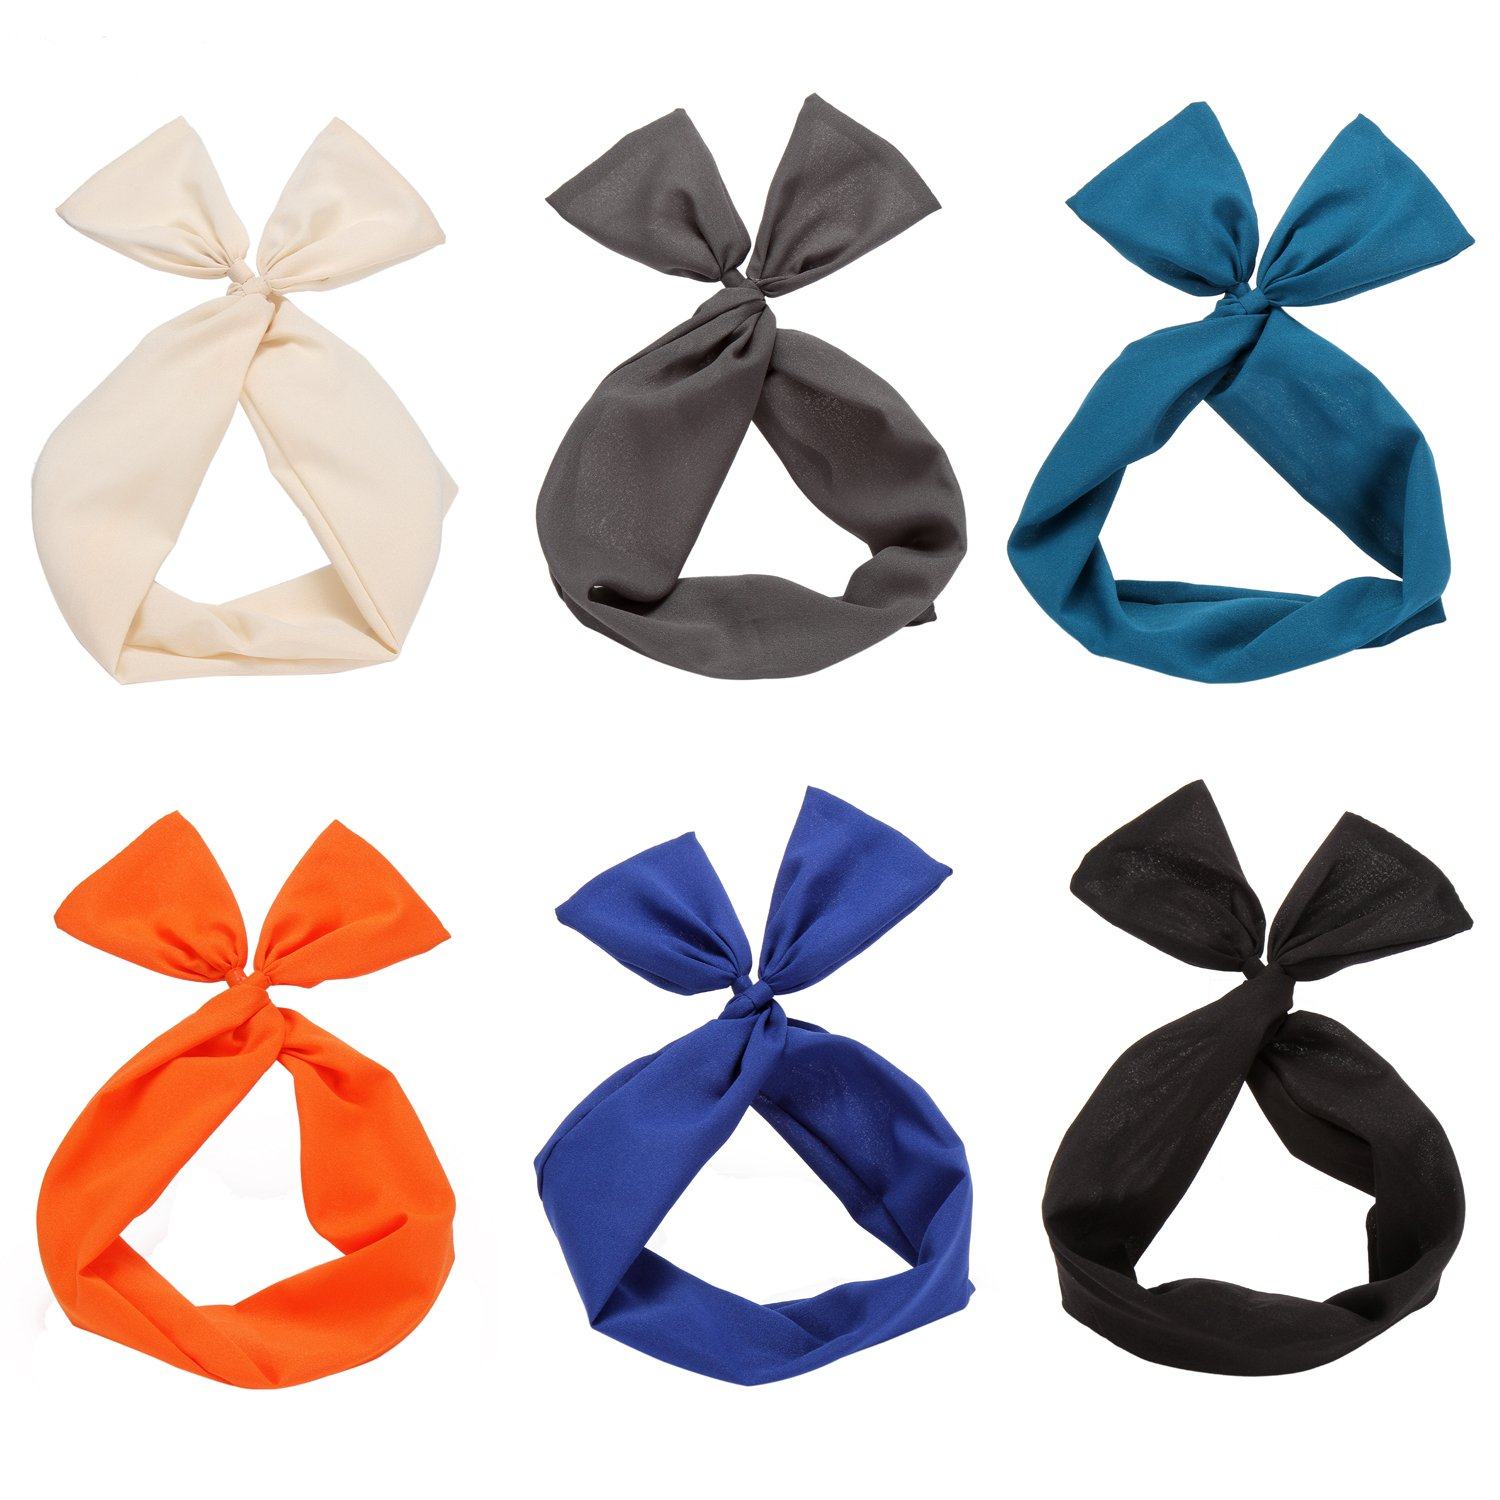 Sea Team Twist Bow Wired Headbands Scarf Wrap Hair Accessory Hairband (6 Packs Solid ) No Model